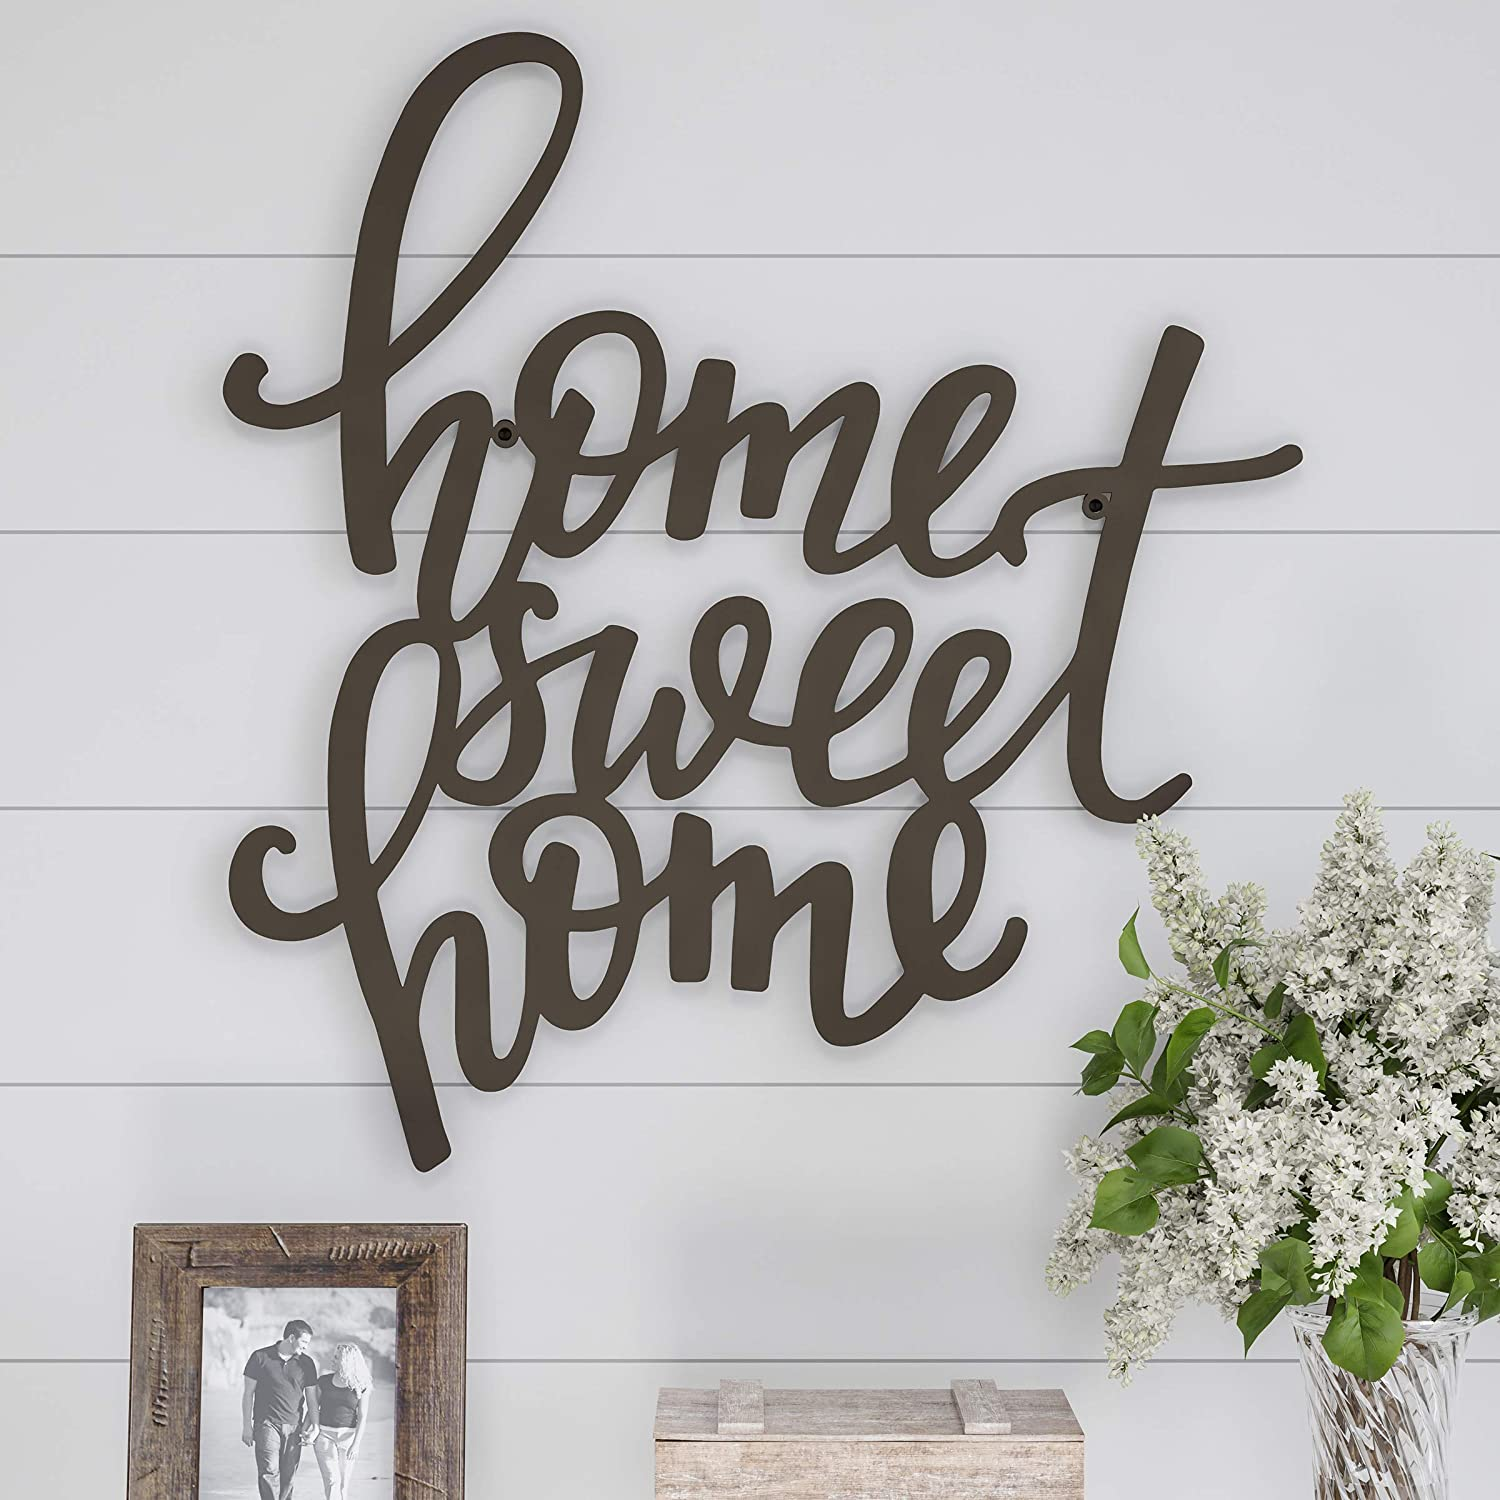 Amazon Com Lavish Home Metal Cutout Sweet Wall Sign 3d Word Art Home Accent Decor Perfect For Modern Rustic Or Vintage Farmhouse Style Home Kitchen